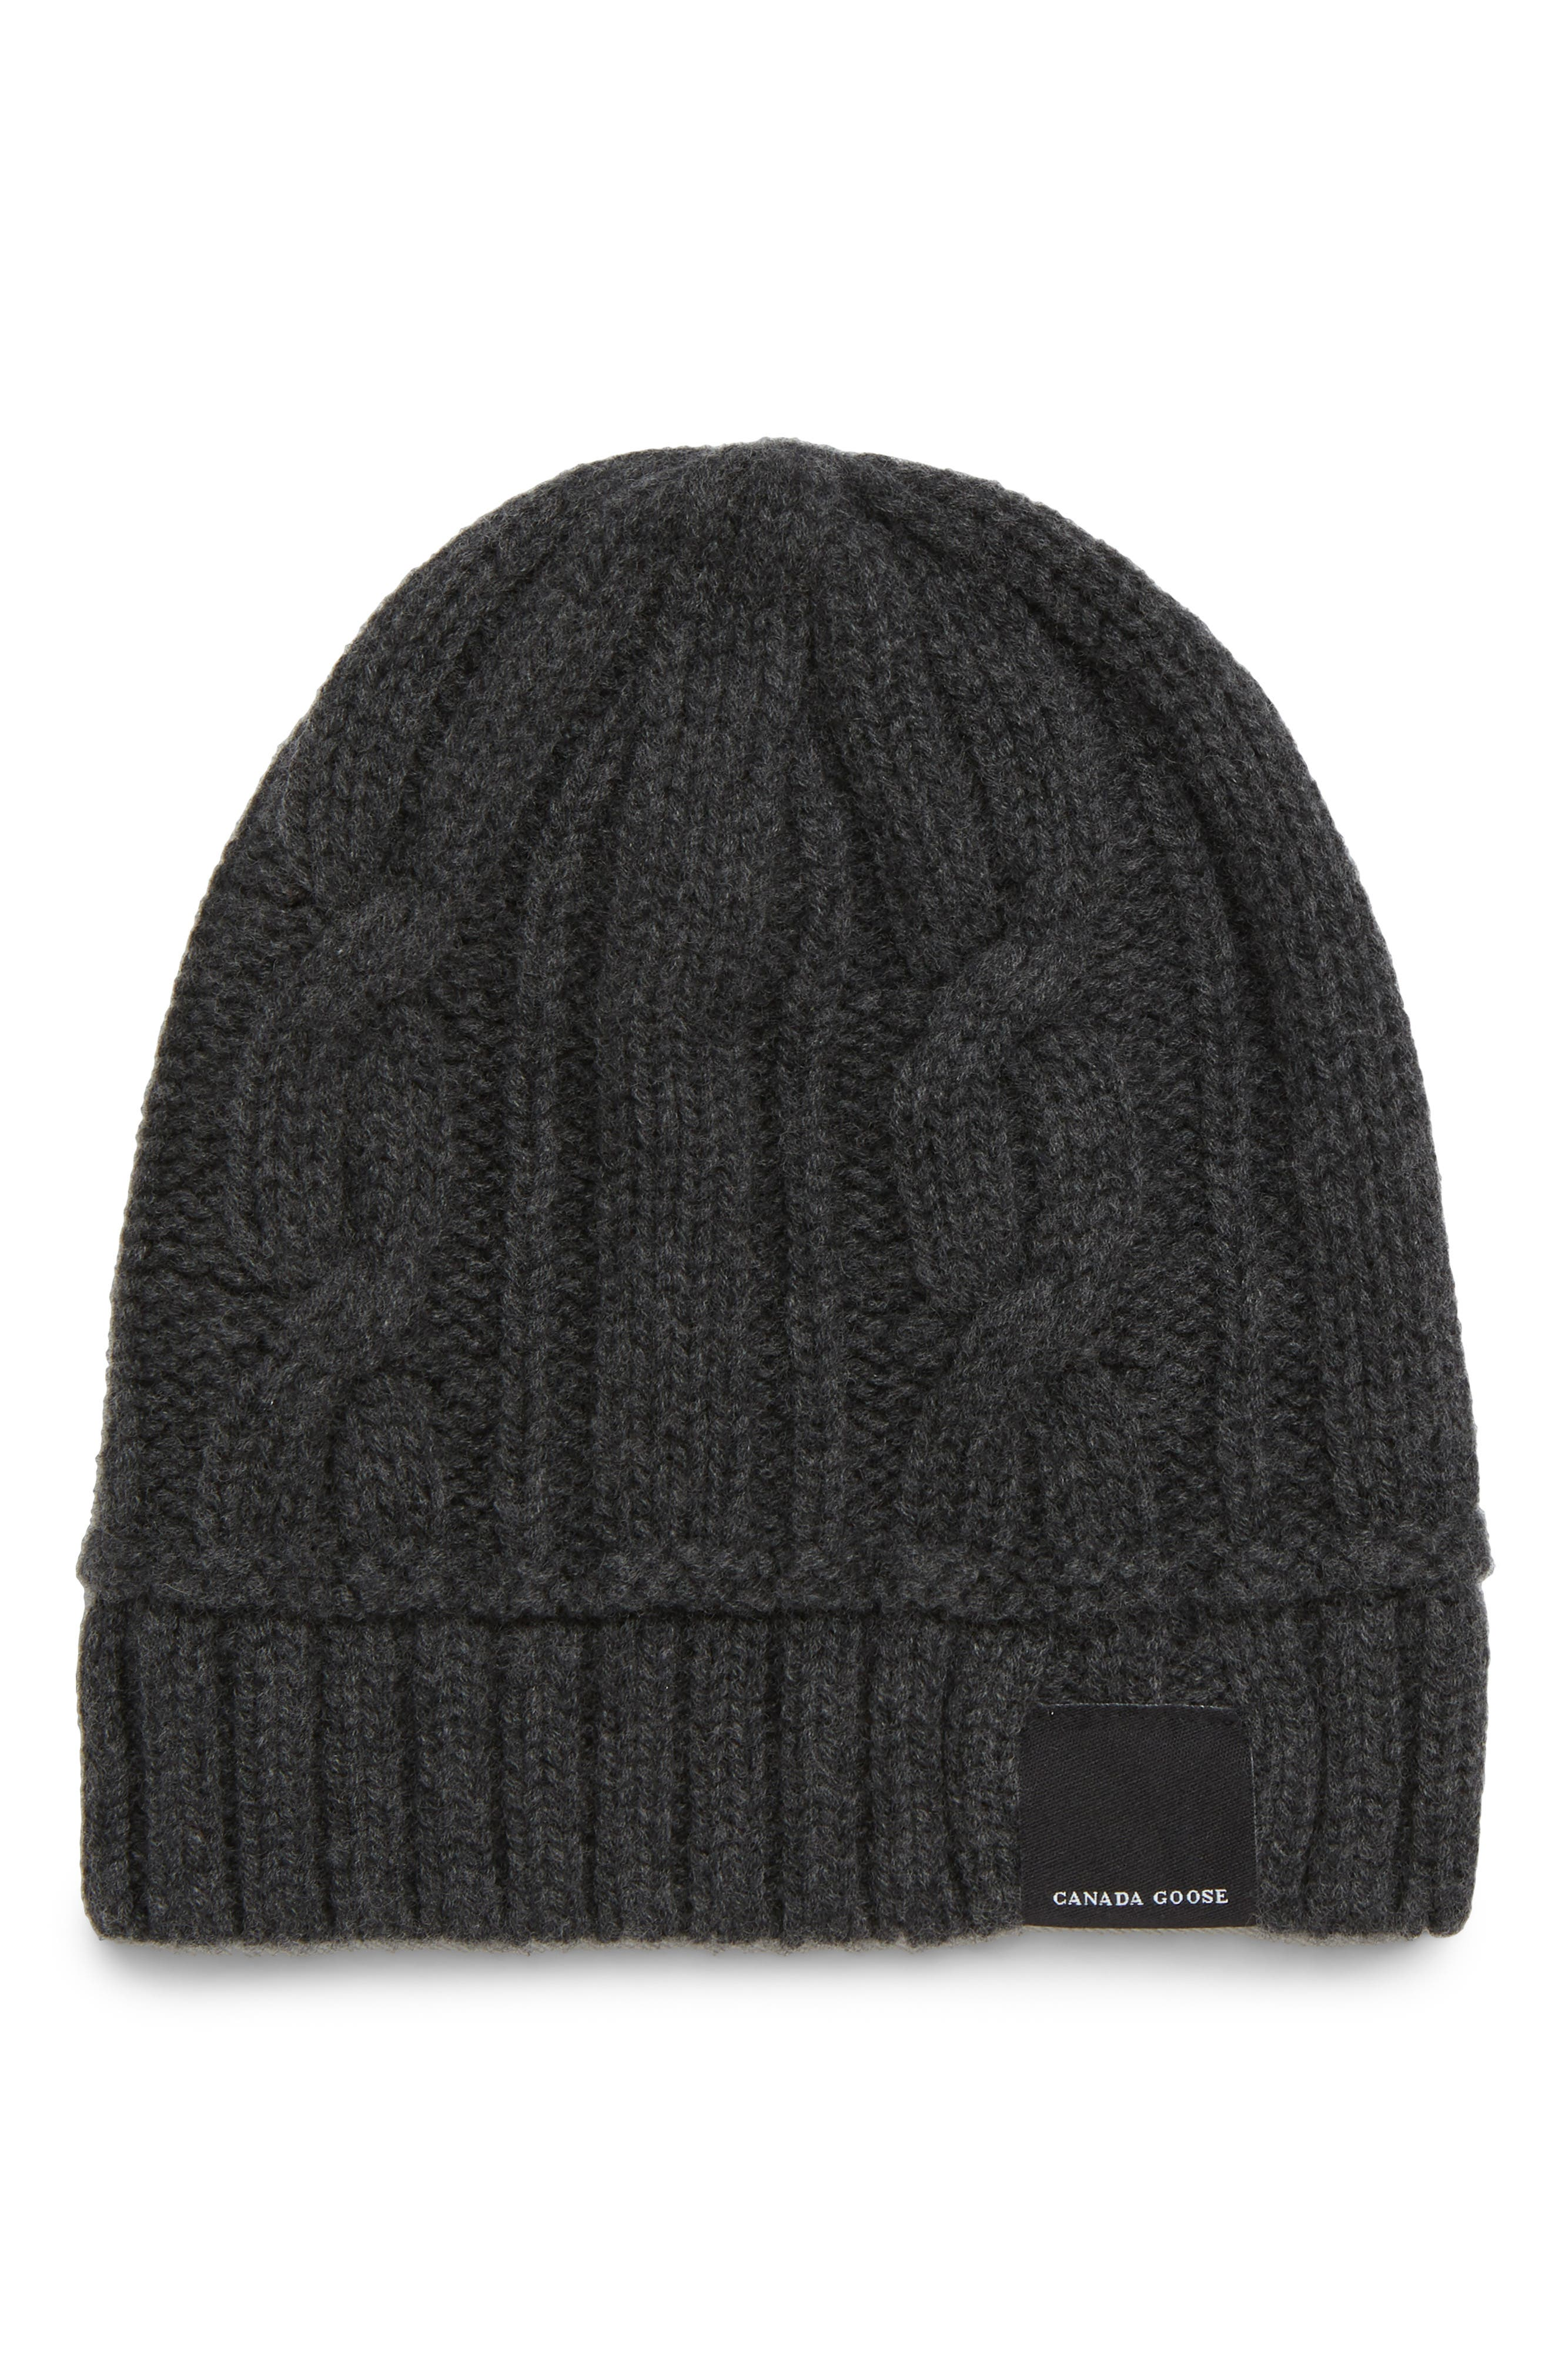 60d10669b2aaf5 Canada Goose Hats for Women | Nordstrom